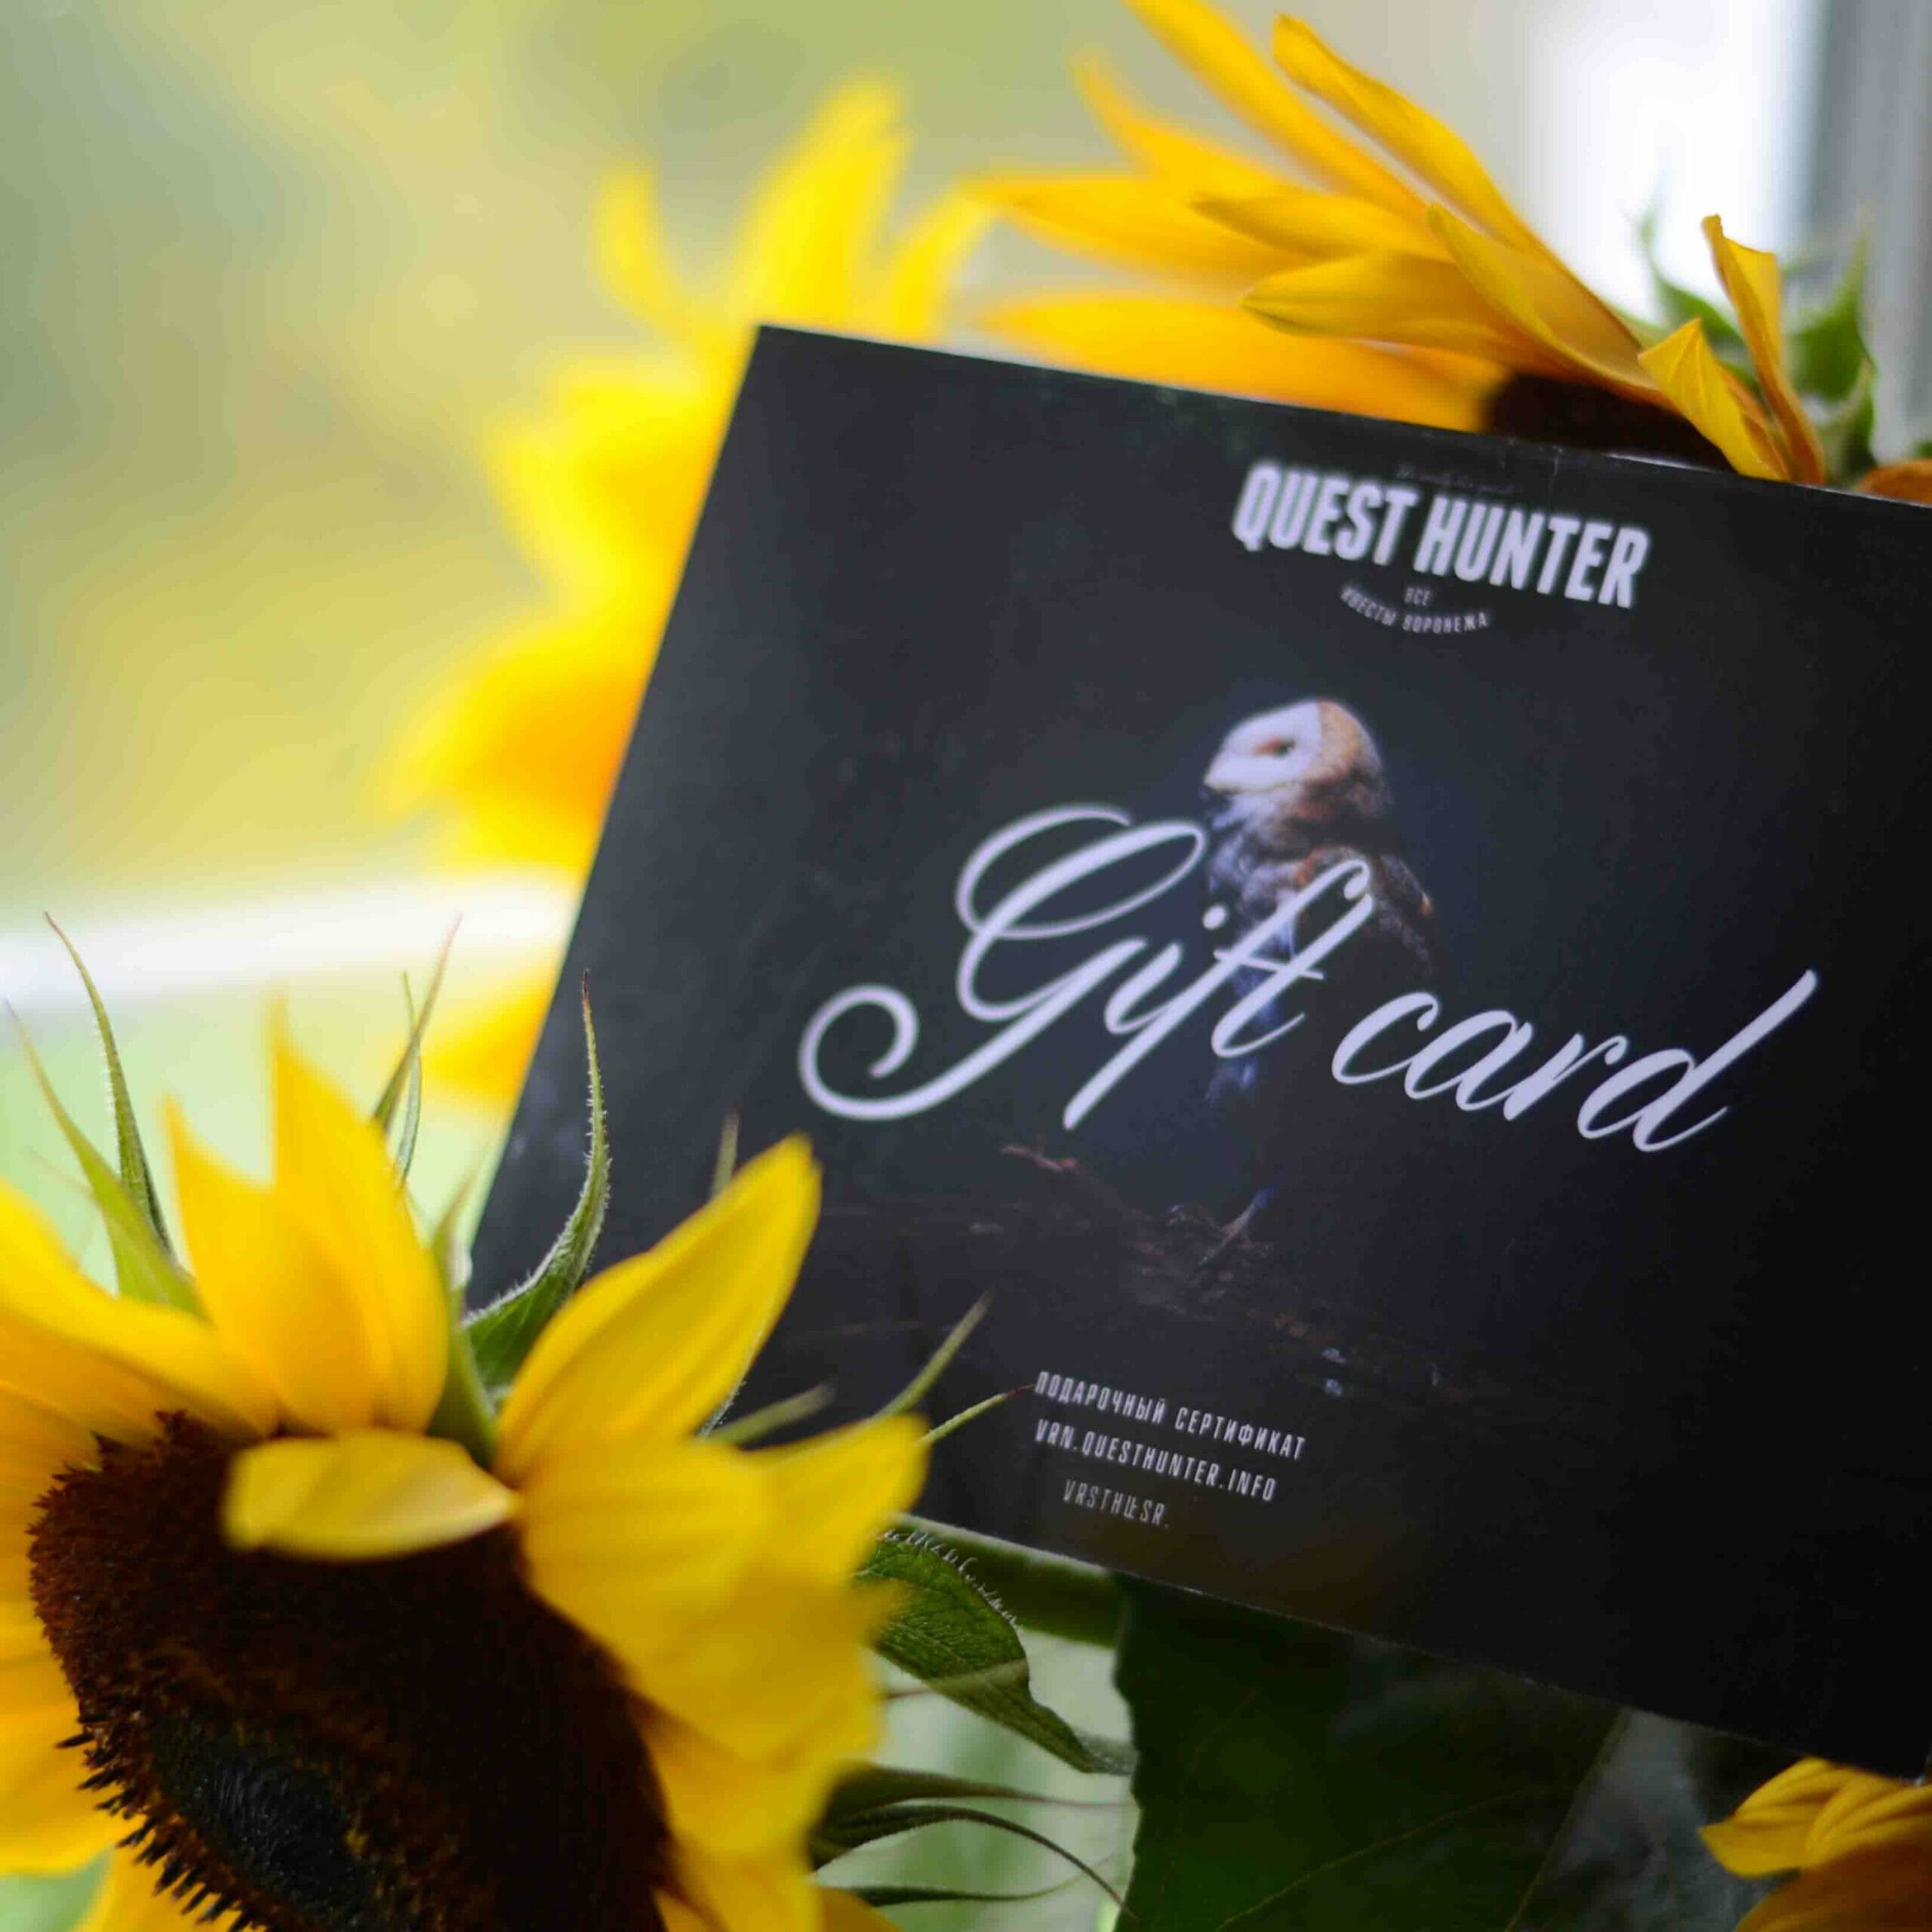 QuestHunter gift card